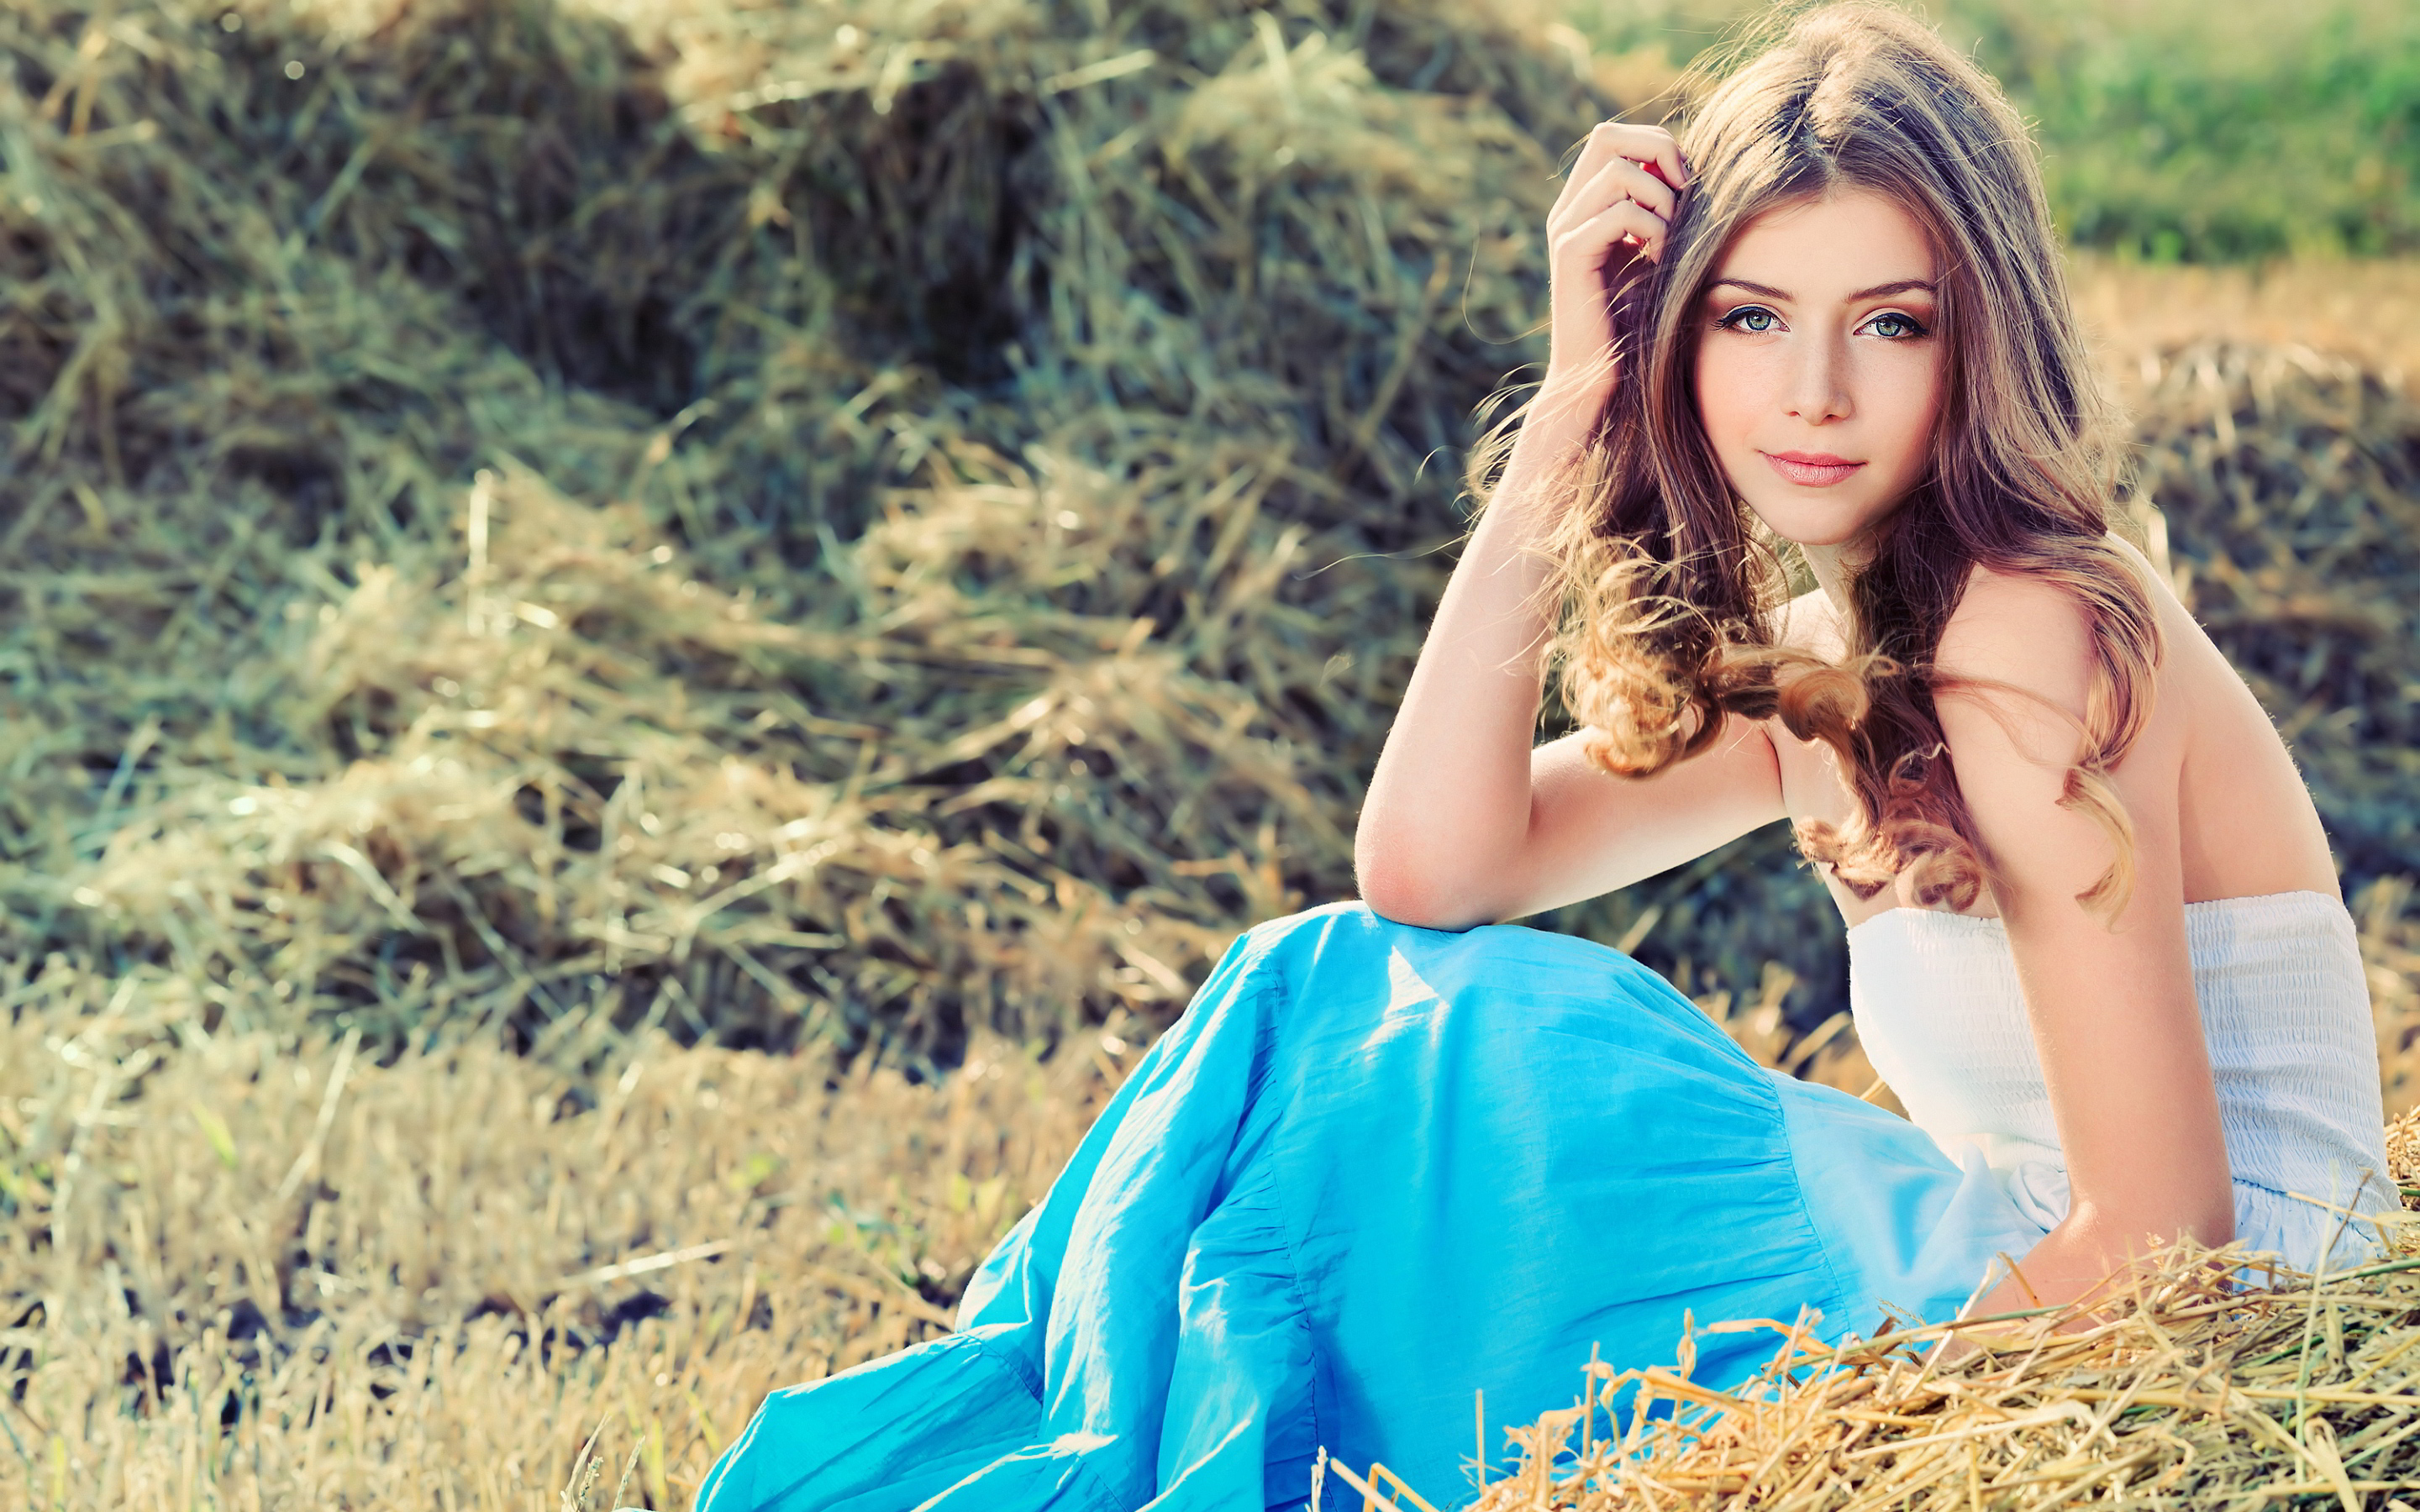 Cute Girl Images Download 2880x1800